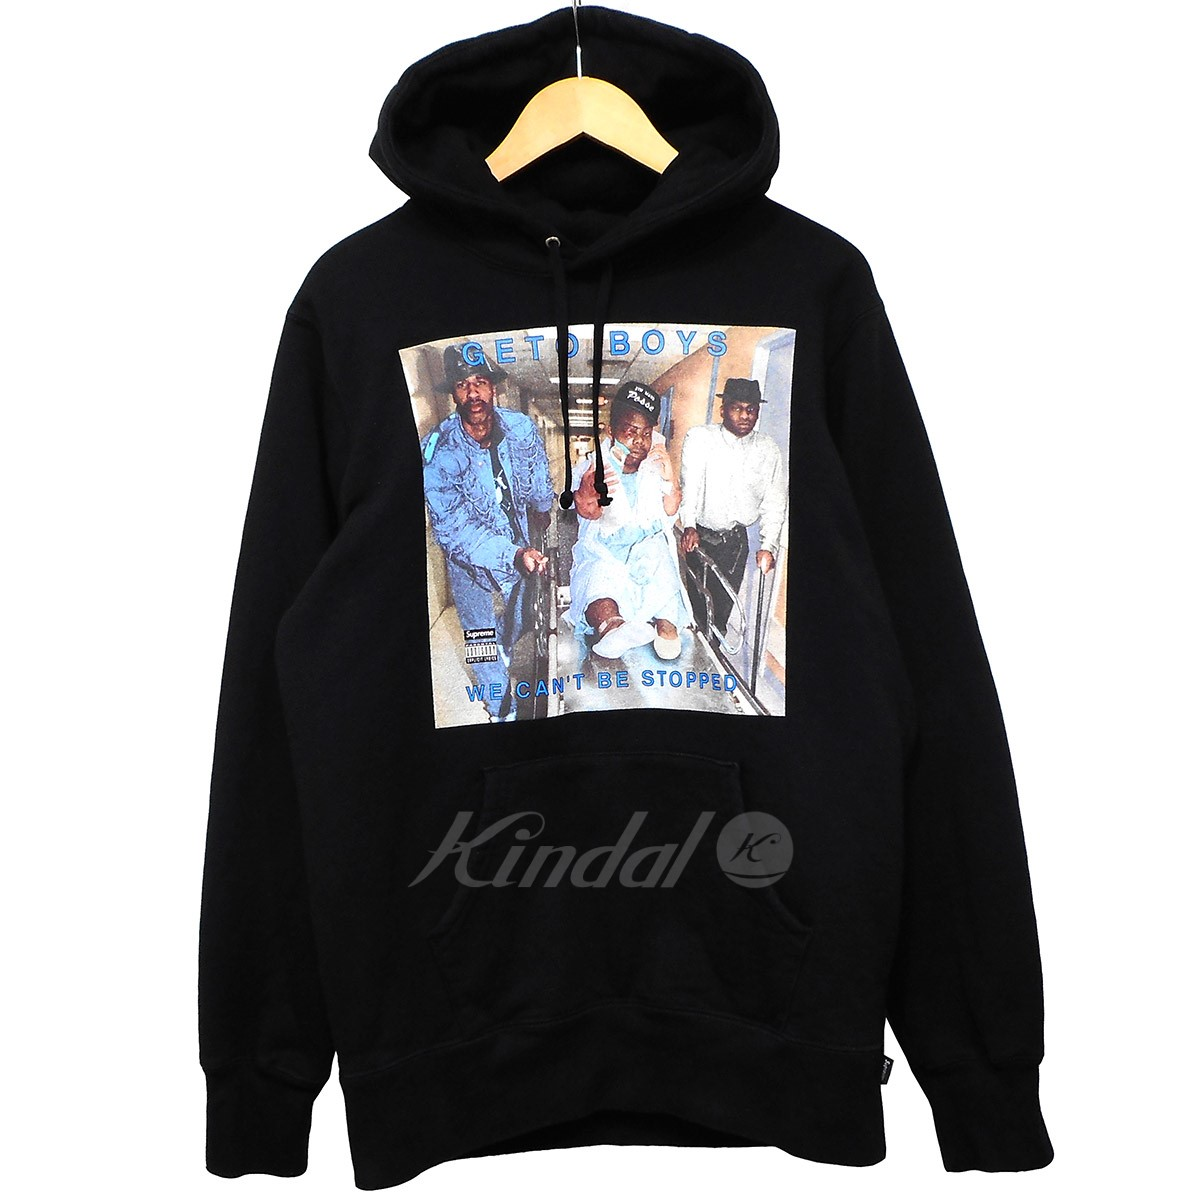 【中古】SUPREME 17SS Rap-A-Lot Geto Boys Hooded Sweatshirt 【送料無料】 【001351】 【KIND1550】